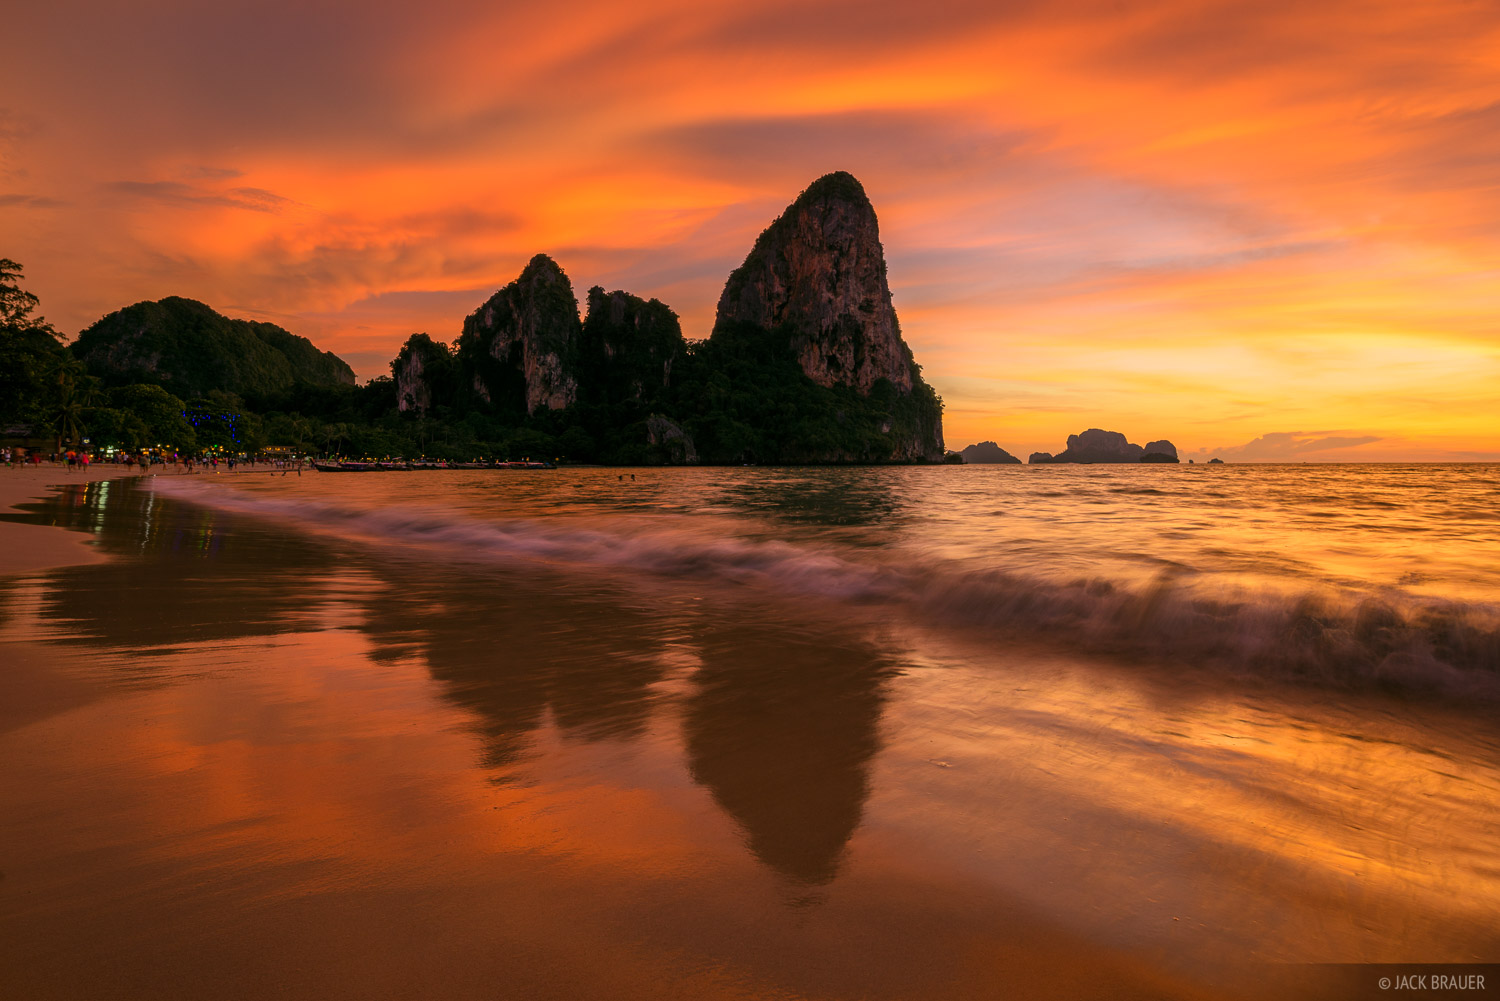 An amazing sunset over the limestone karsts of Railay beach.